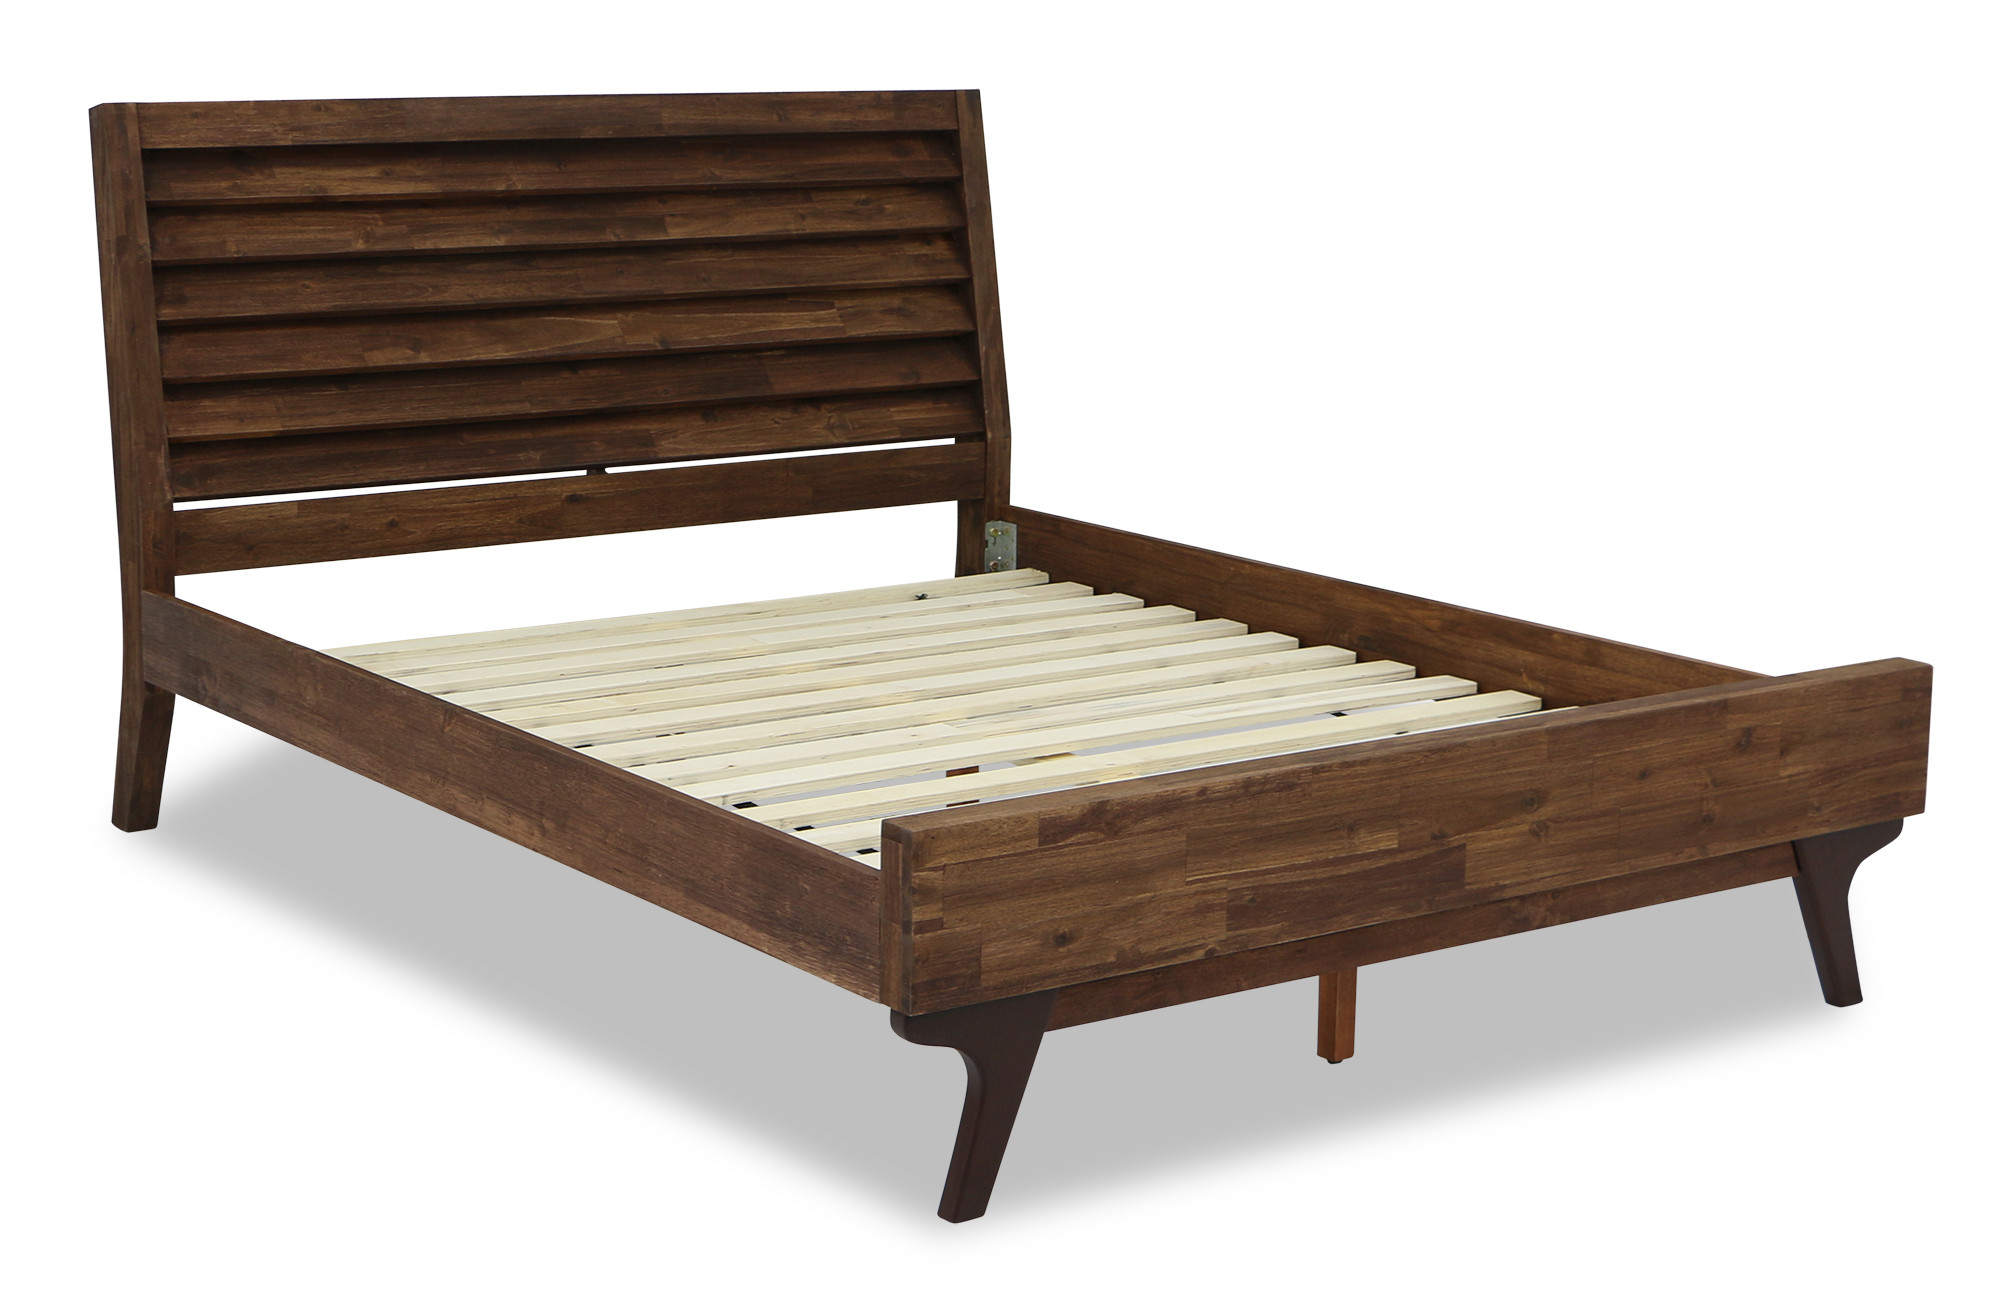 Sierra Queen Bed Wooden Bed Frames Beds Bedroom Furniture